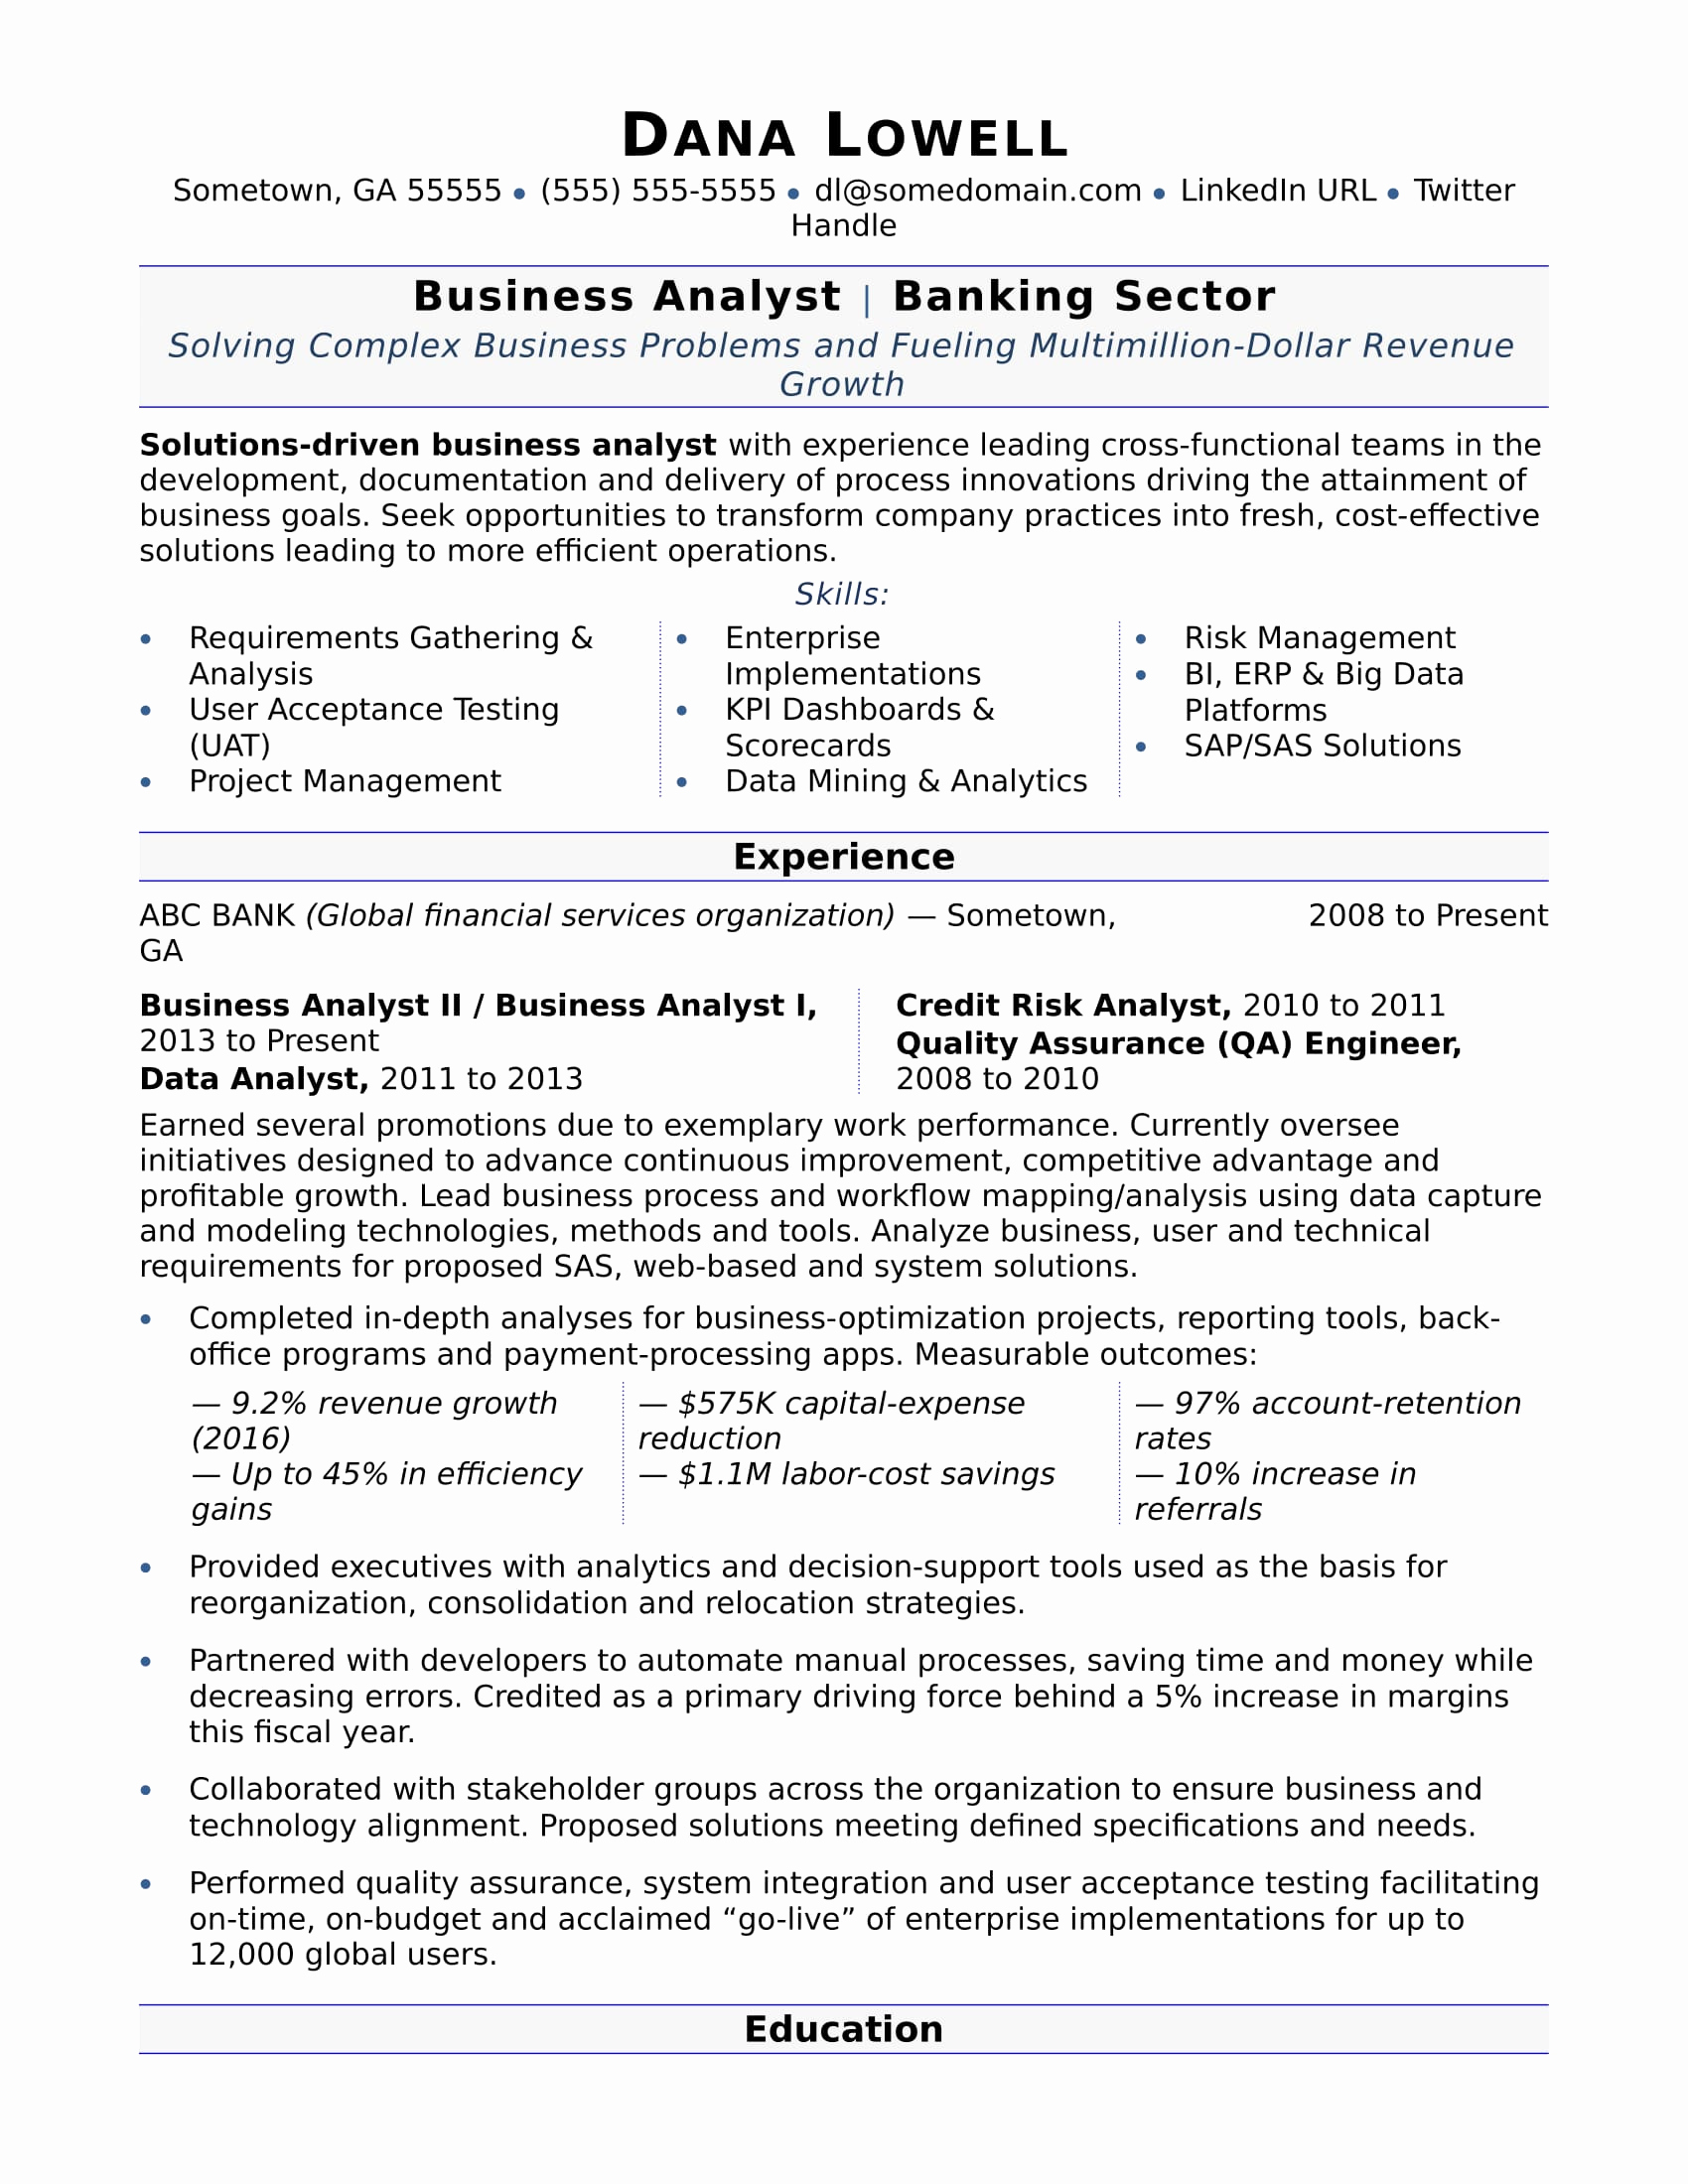 Business Analyst Resume Examples Awesome Business Analyst Resume Sample